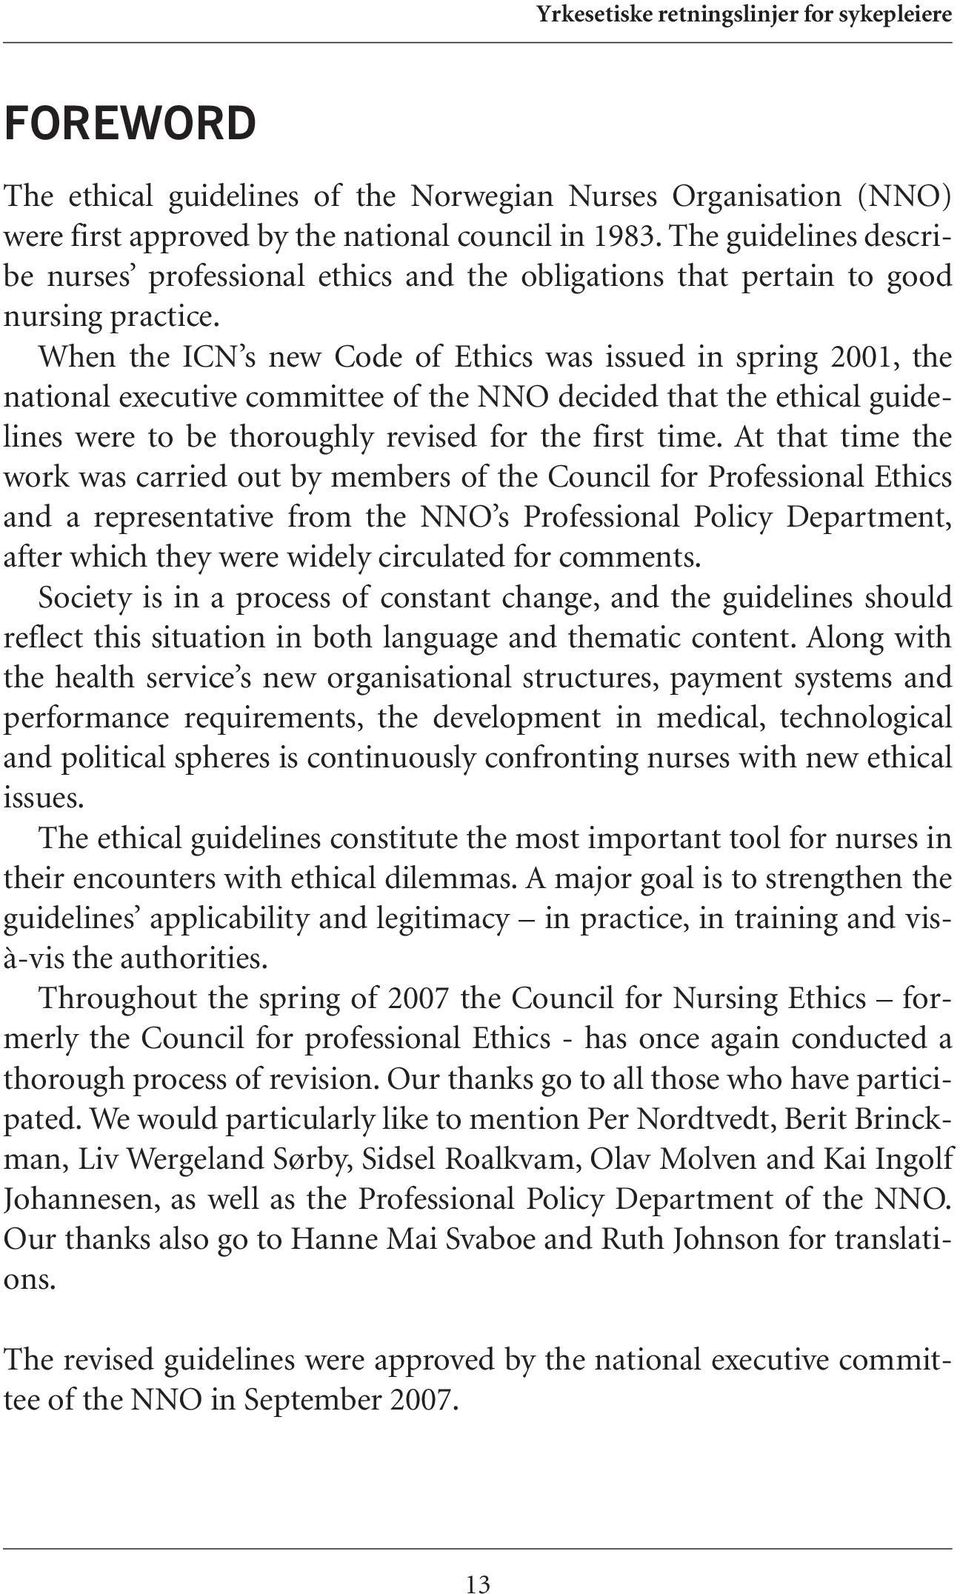 When the ICN s new Code of Ethics was issued in spring 2001, the national executive committee of the NNO decided that the ethical guidelines were to be thoroughly revised for the first time.